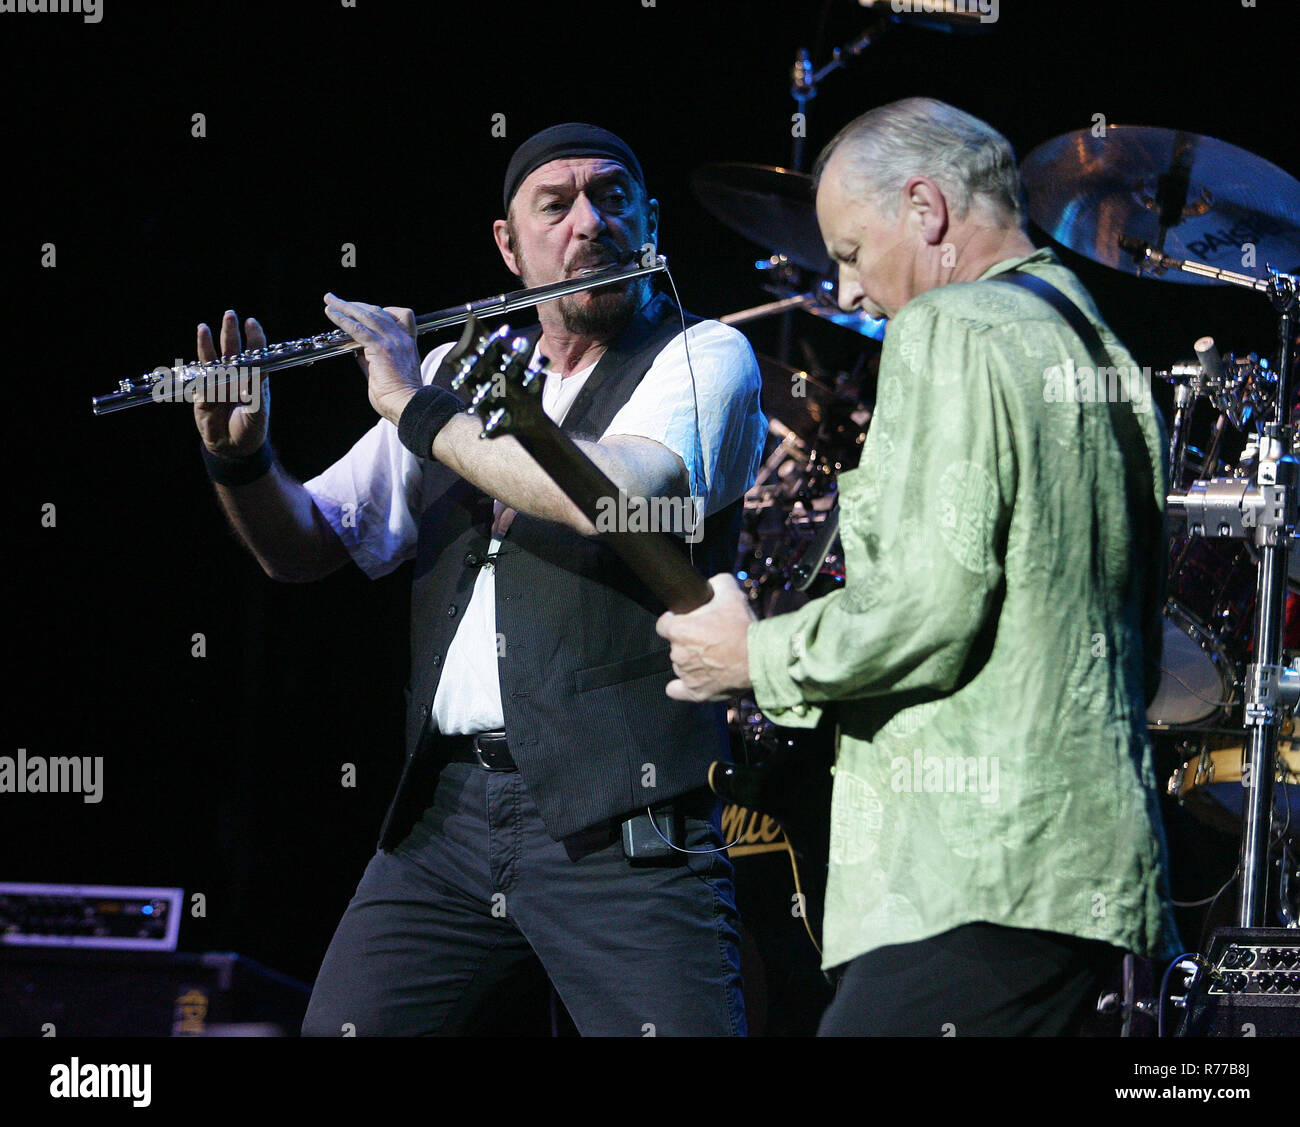 Ian Anderson (L) and Martin Barre with Jethro Tull perform in concert at the Seminole Hard Rock Hotel and Casino in Hollywood, Florida on December 13, 2007. - Stock Image